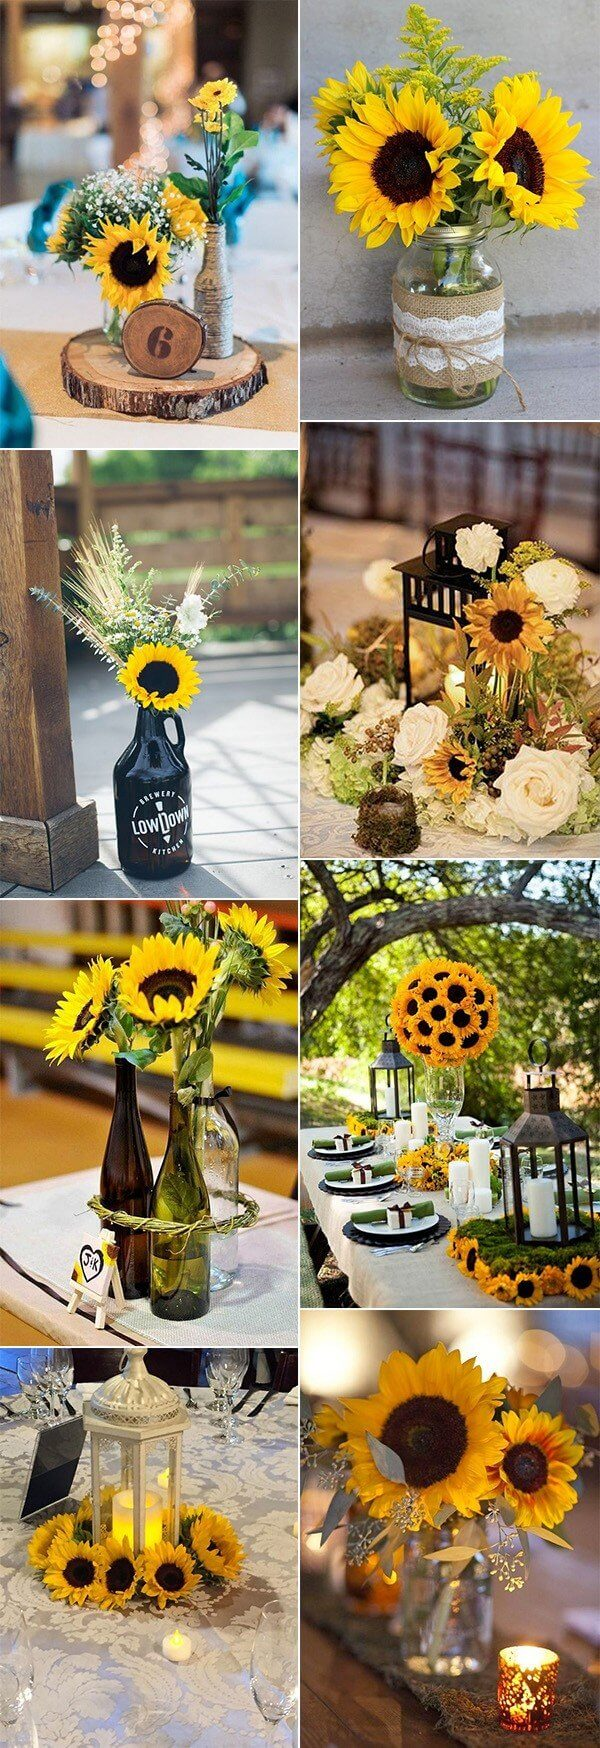 21 Creative Rustic Backyard Wedding Ideas For Summer Fall 2020